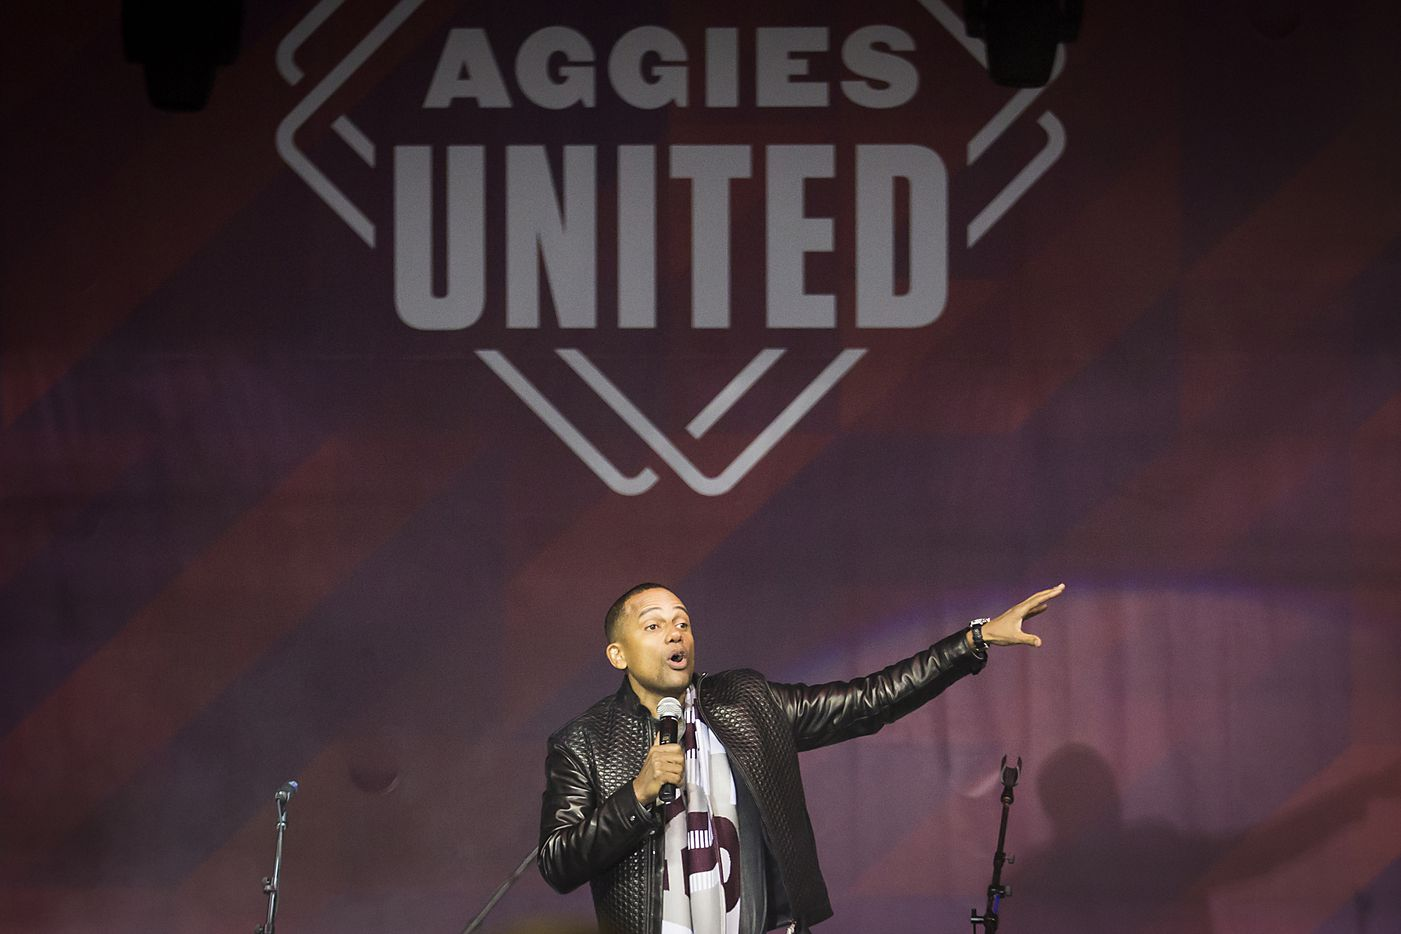 Actor Hill Harper speaks during the Aggies United event.